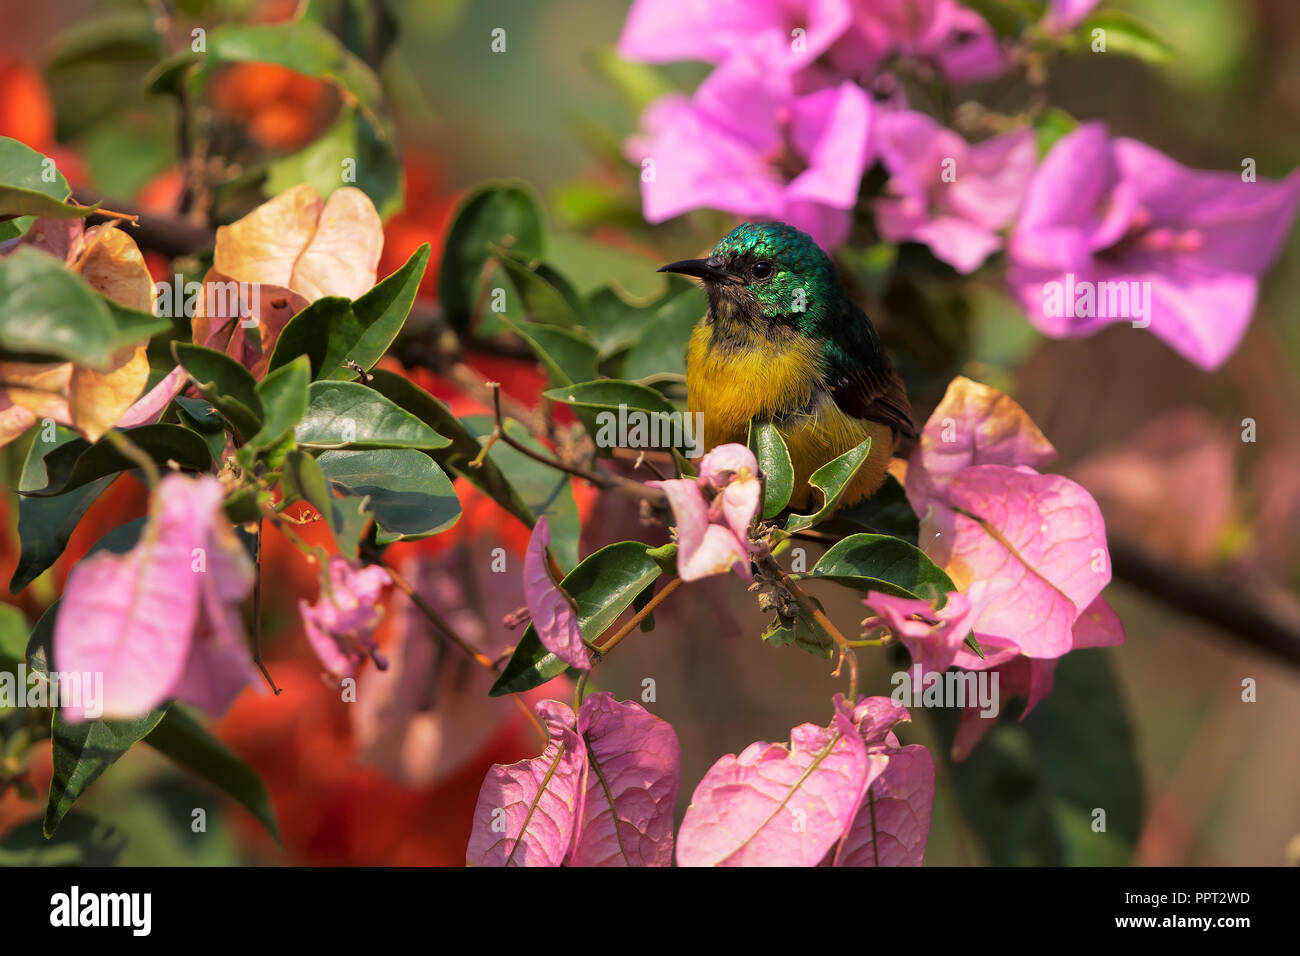 Variable sunbird - Stock Image